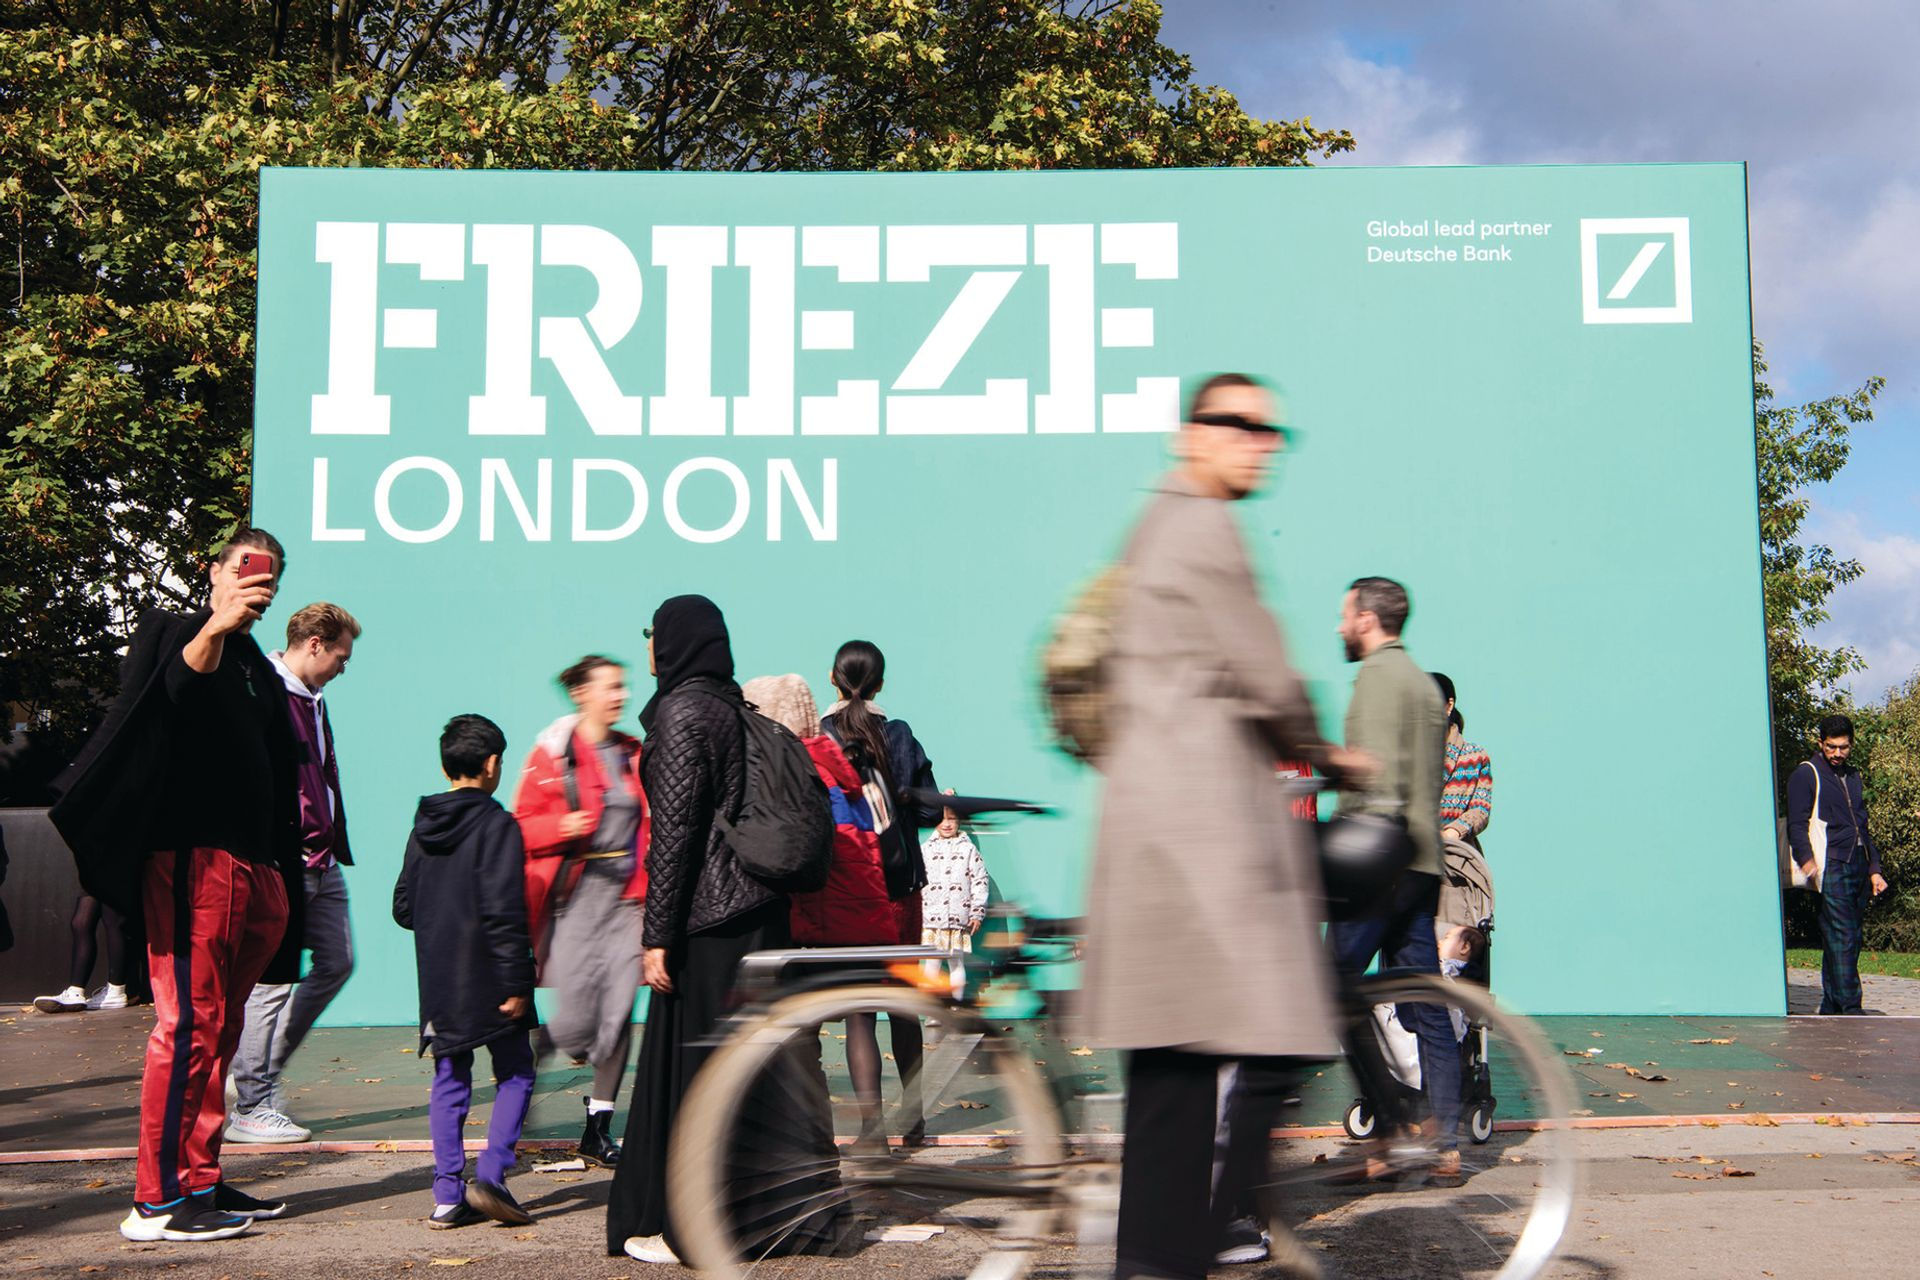 Frieze London and Frieze Masters will not look too different to normal this year, but masks will be mandatory for all visitors and exhibitors, plus everyone will have to provide proof of vaccination or a negative Covid-19 test in order to gain entry to the events. Photo © Linda Nylind, Courtesy Frieze